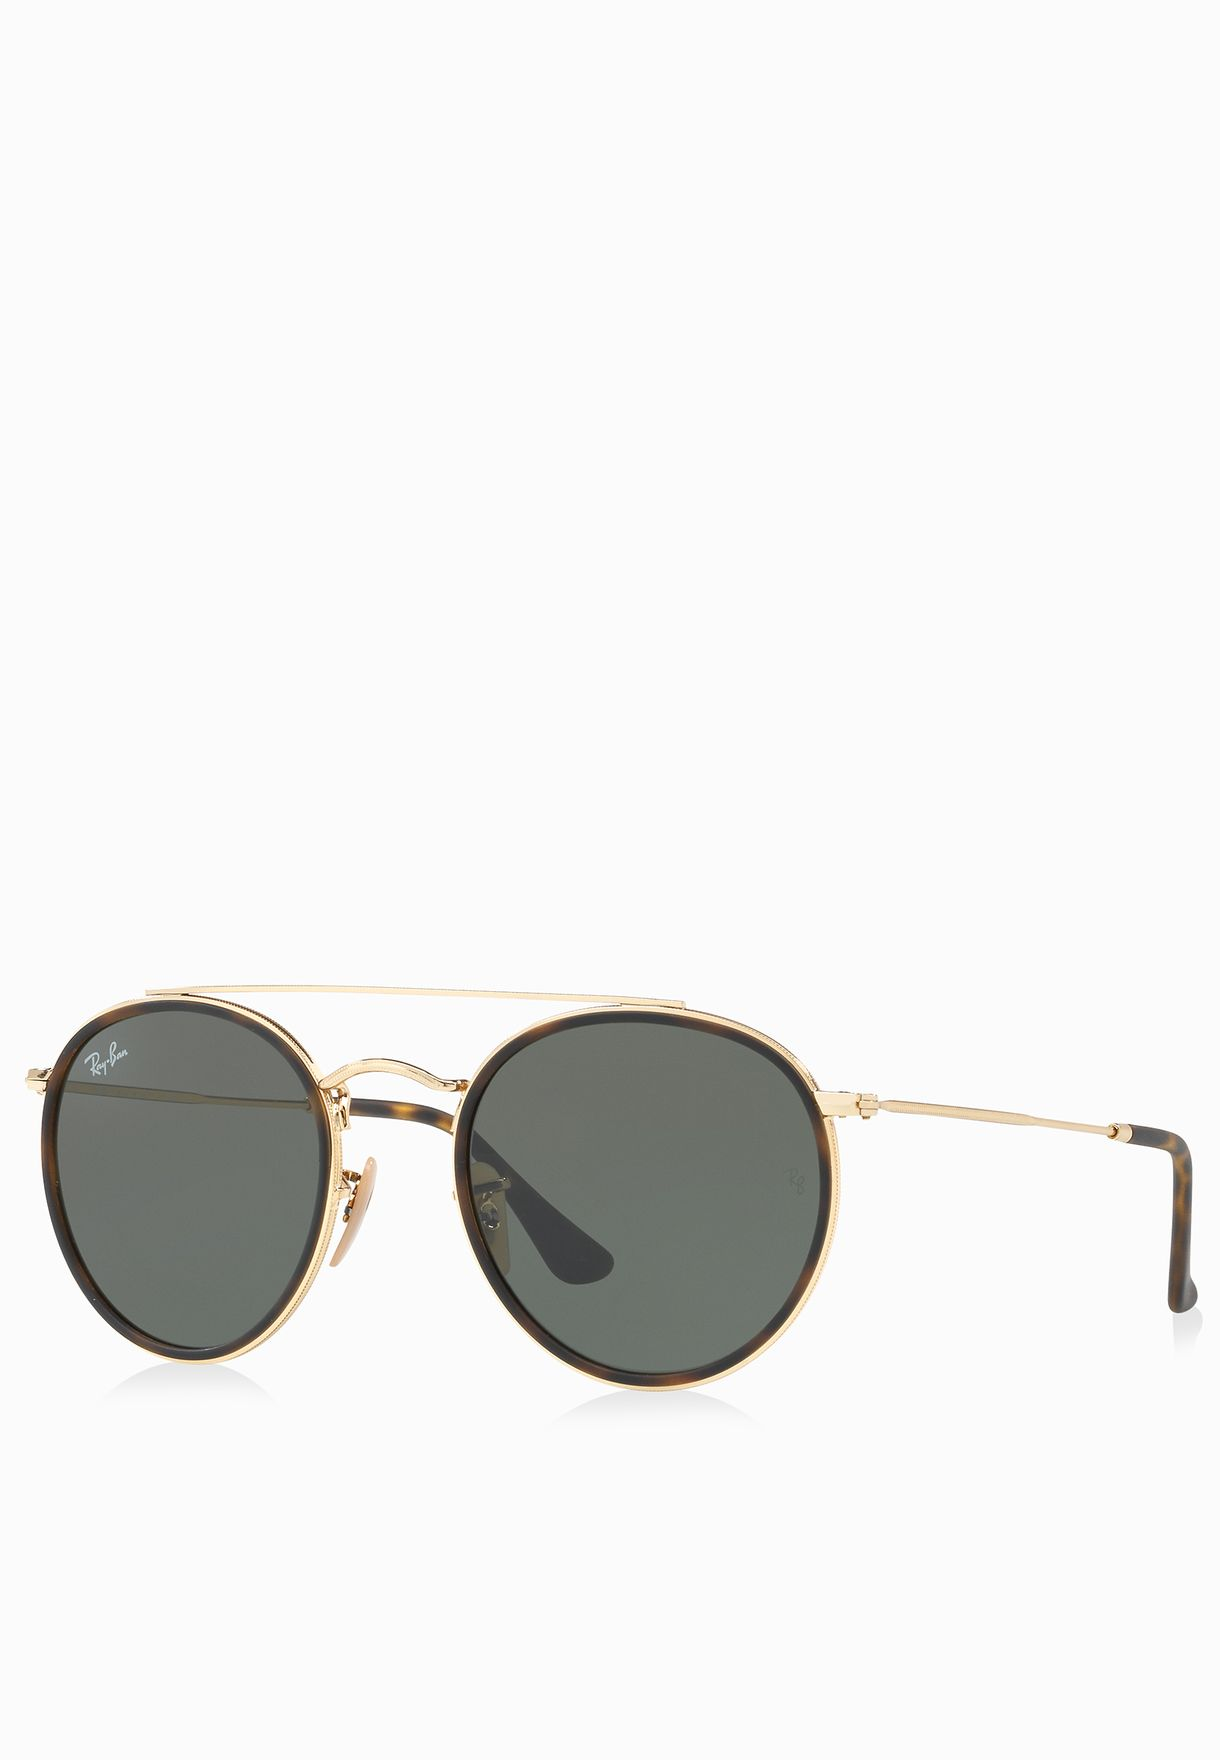 Shop Ray-Ban gold RB3647N Round Double Bridge 8053672737622 ... 0b9f09fc65